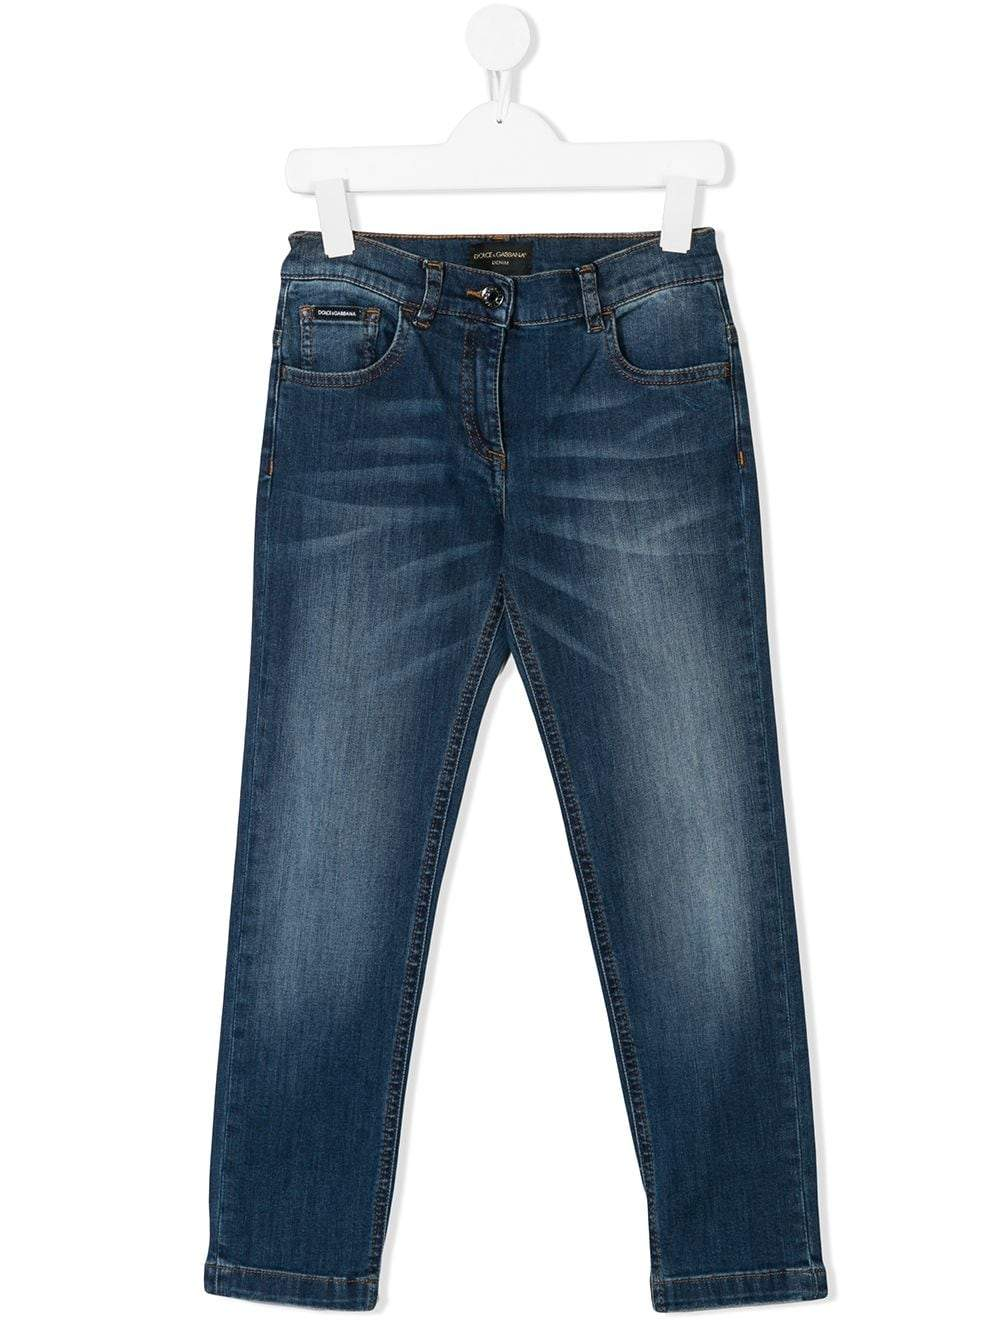 DOLCE & GABBANA KIDS Slim Fit Jeans